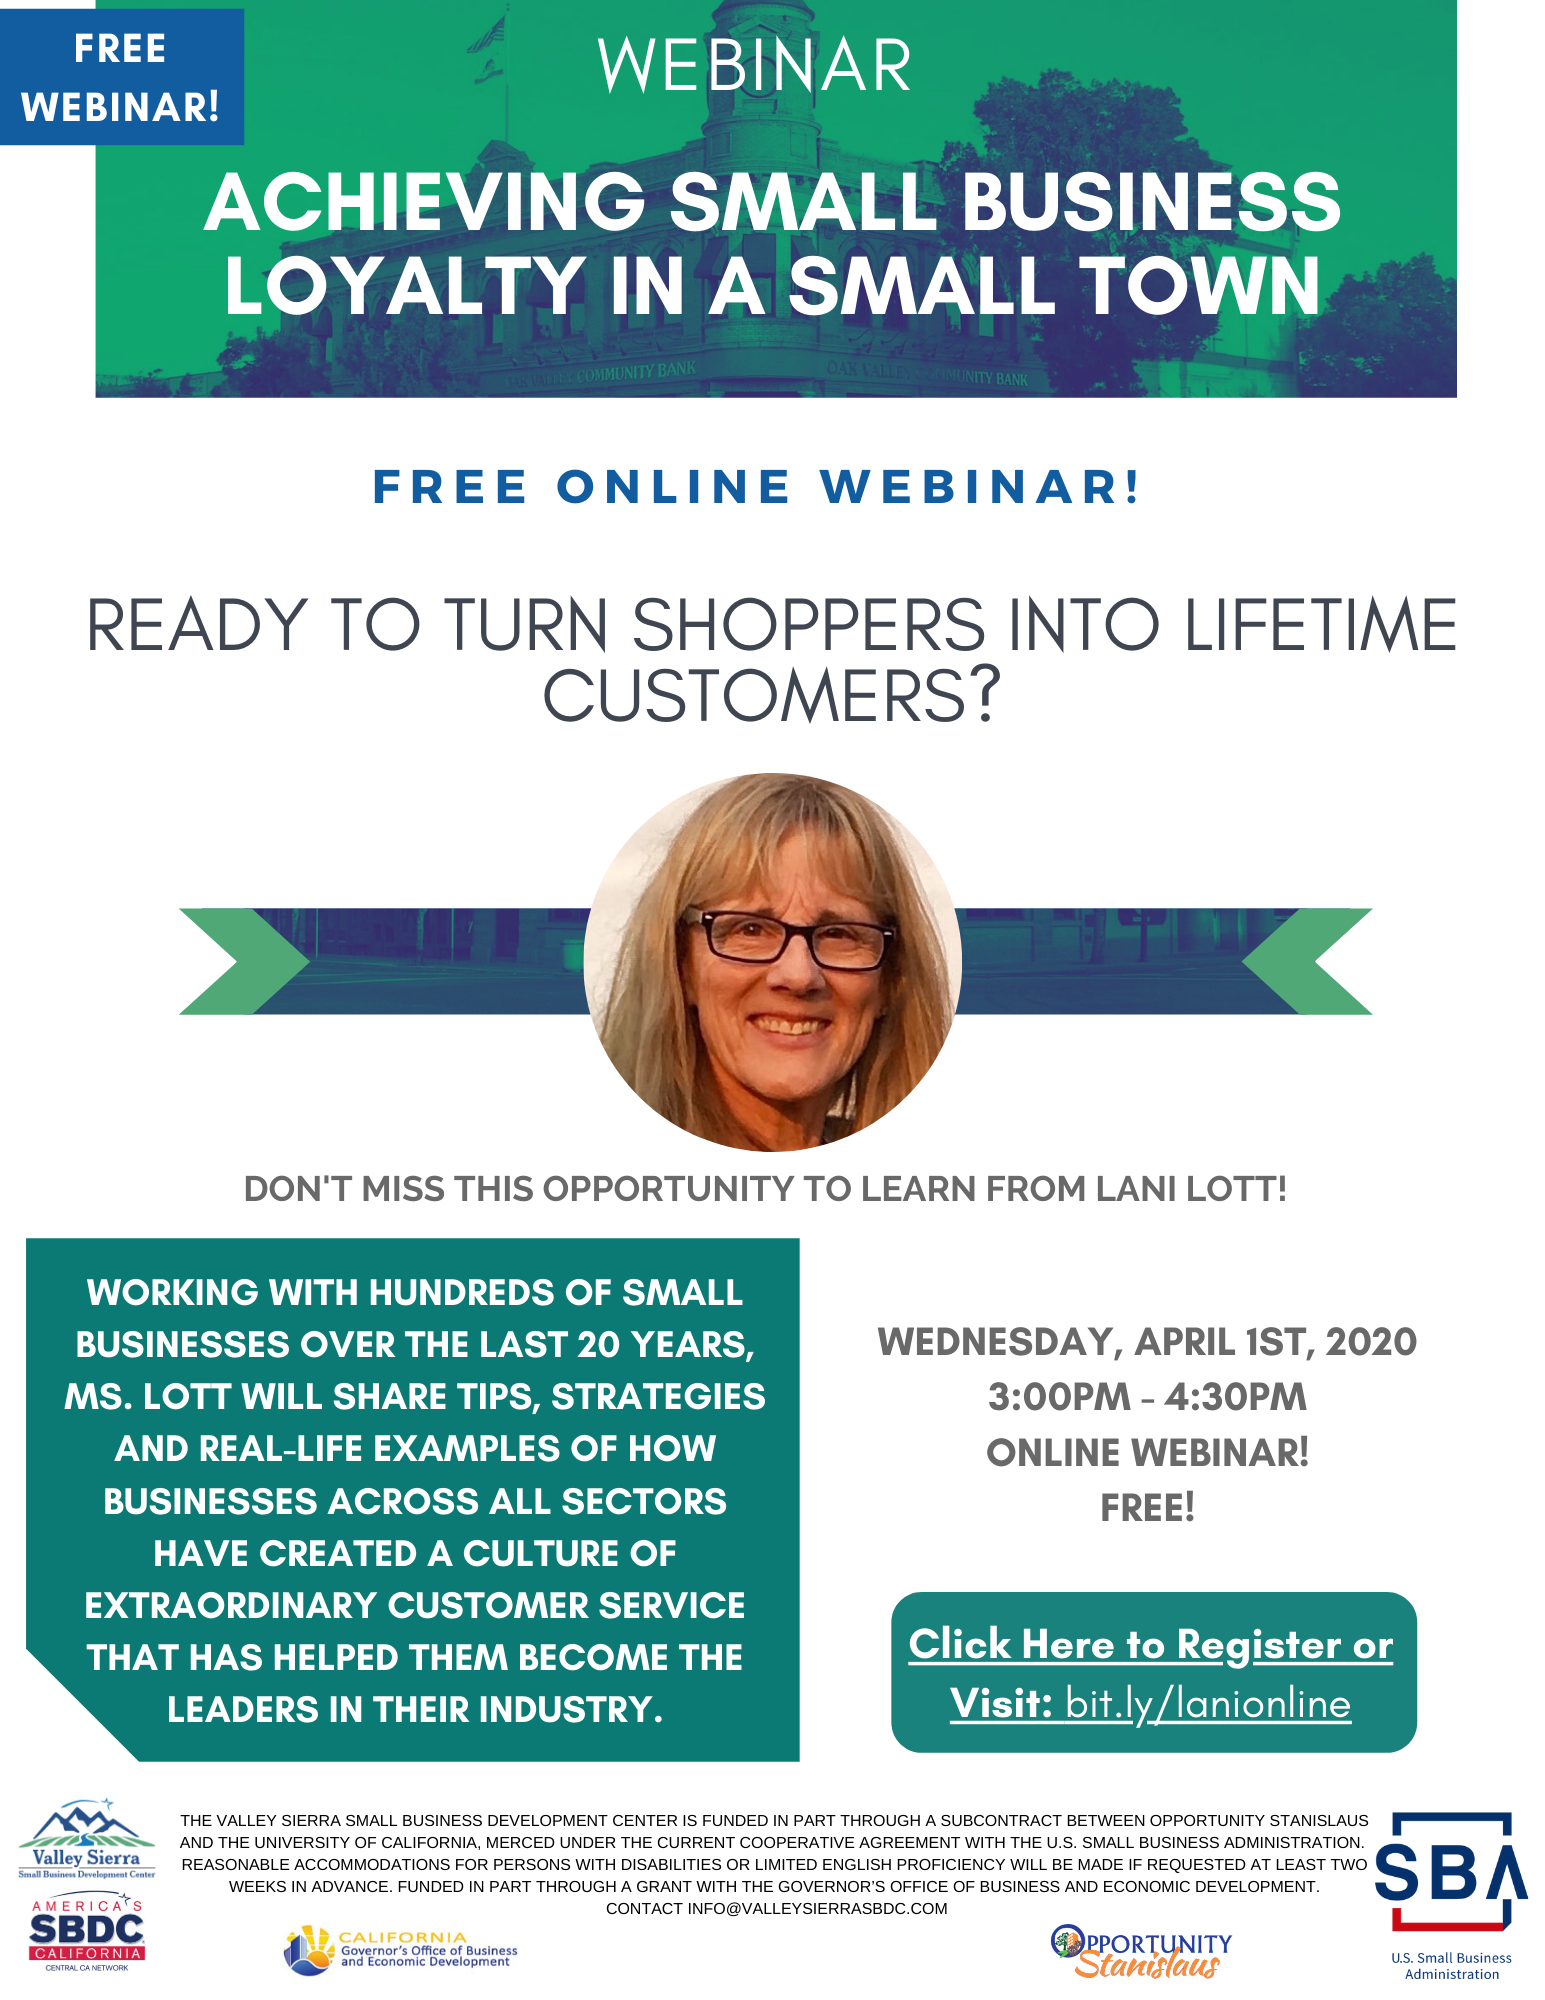 Event Flyer, Webinar: Small Business Loyalty in a Small Town - 4/1 3pm - 4:30pm. FREE